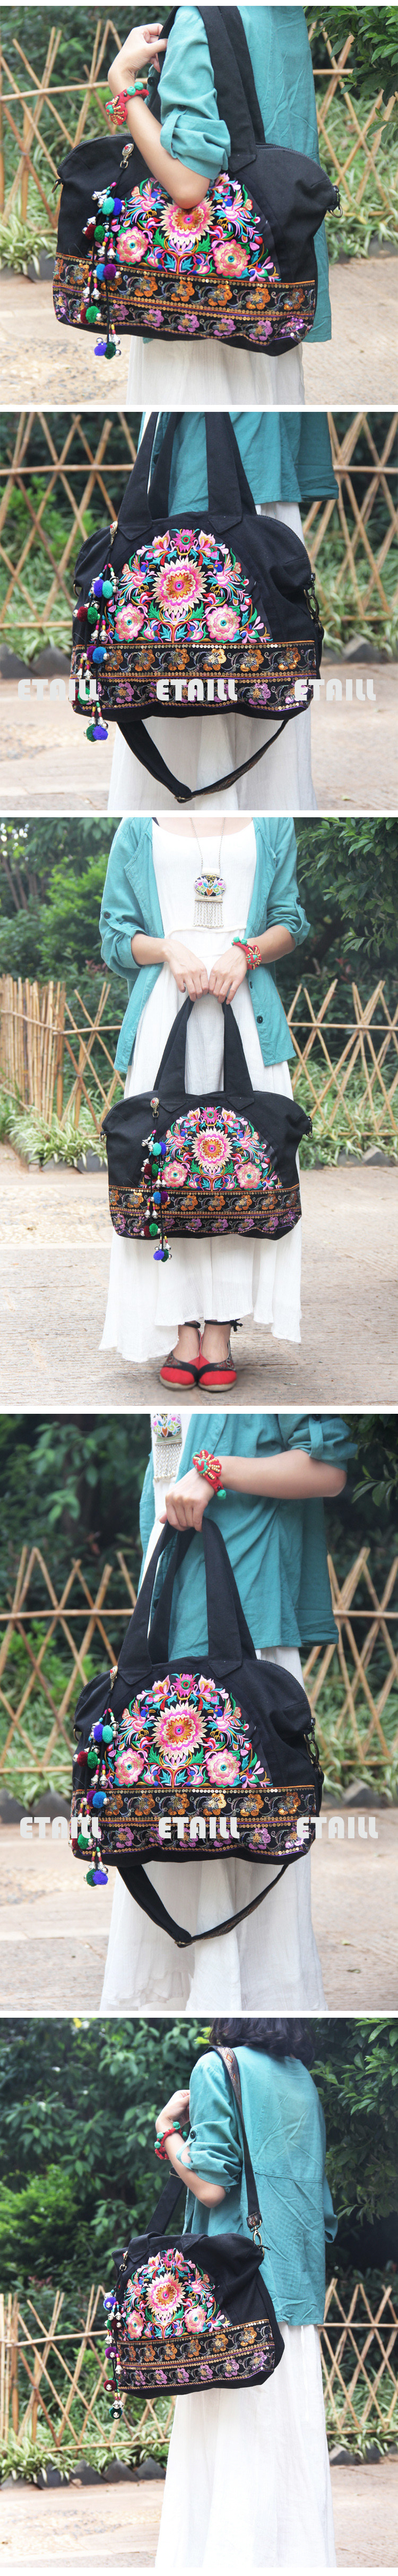 hmong embroidered bags